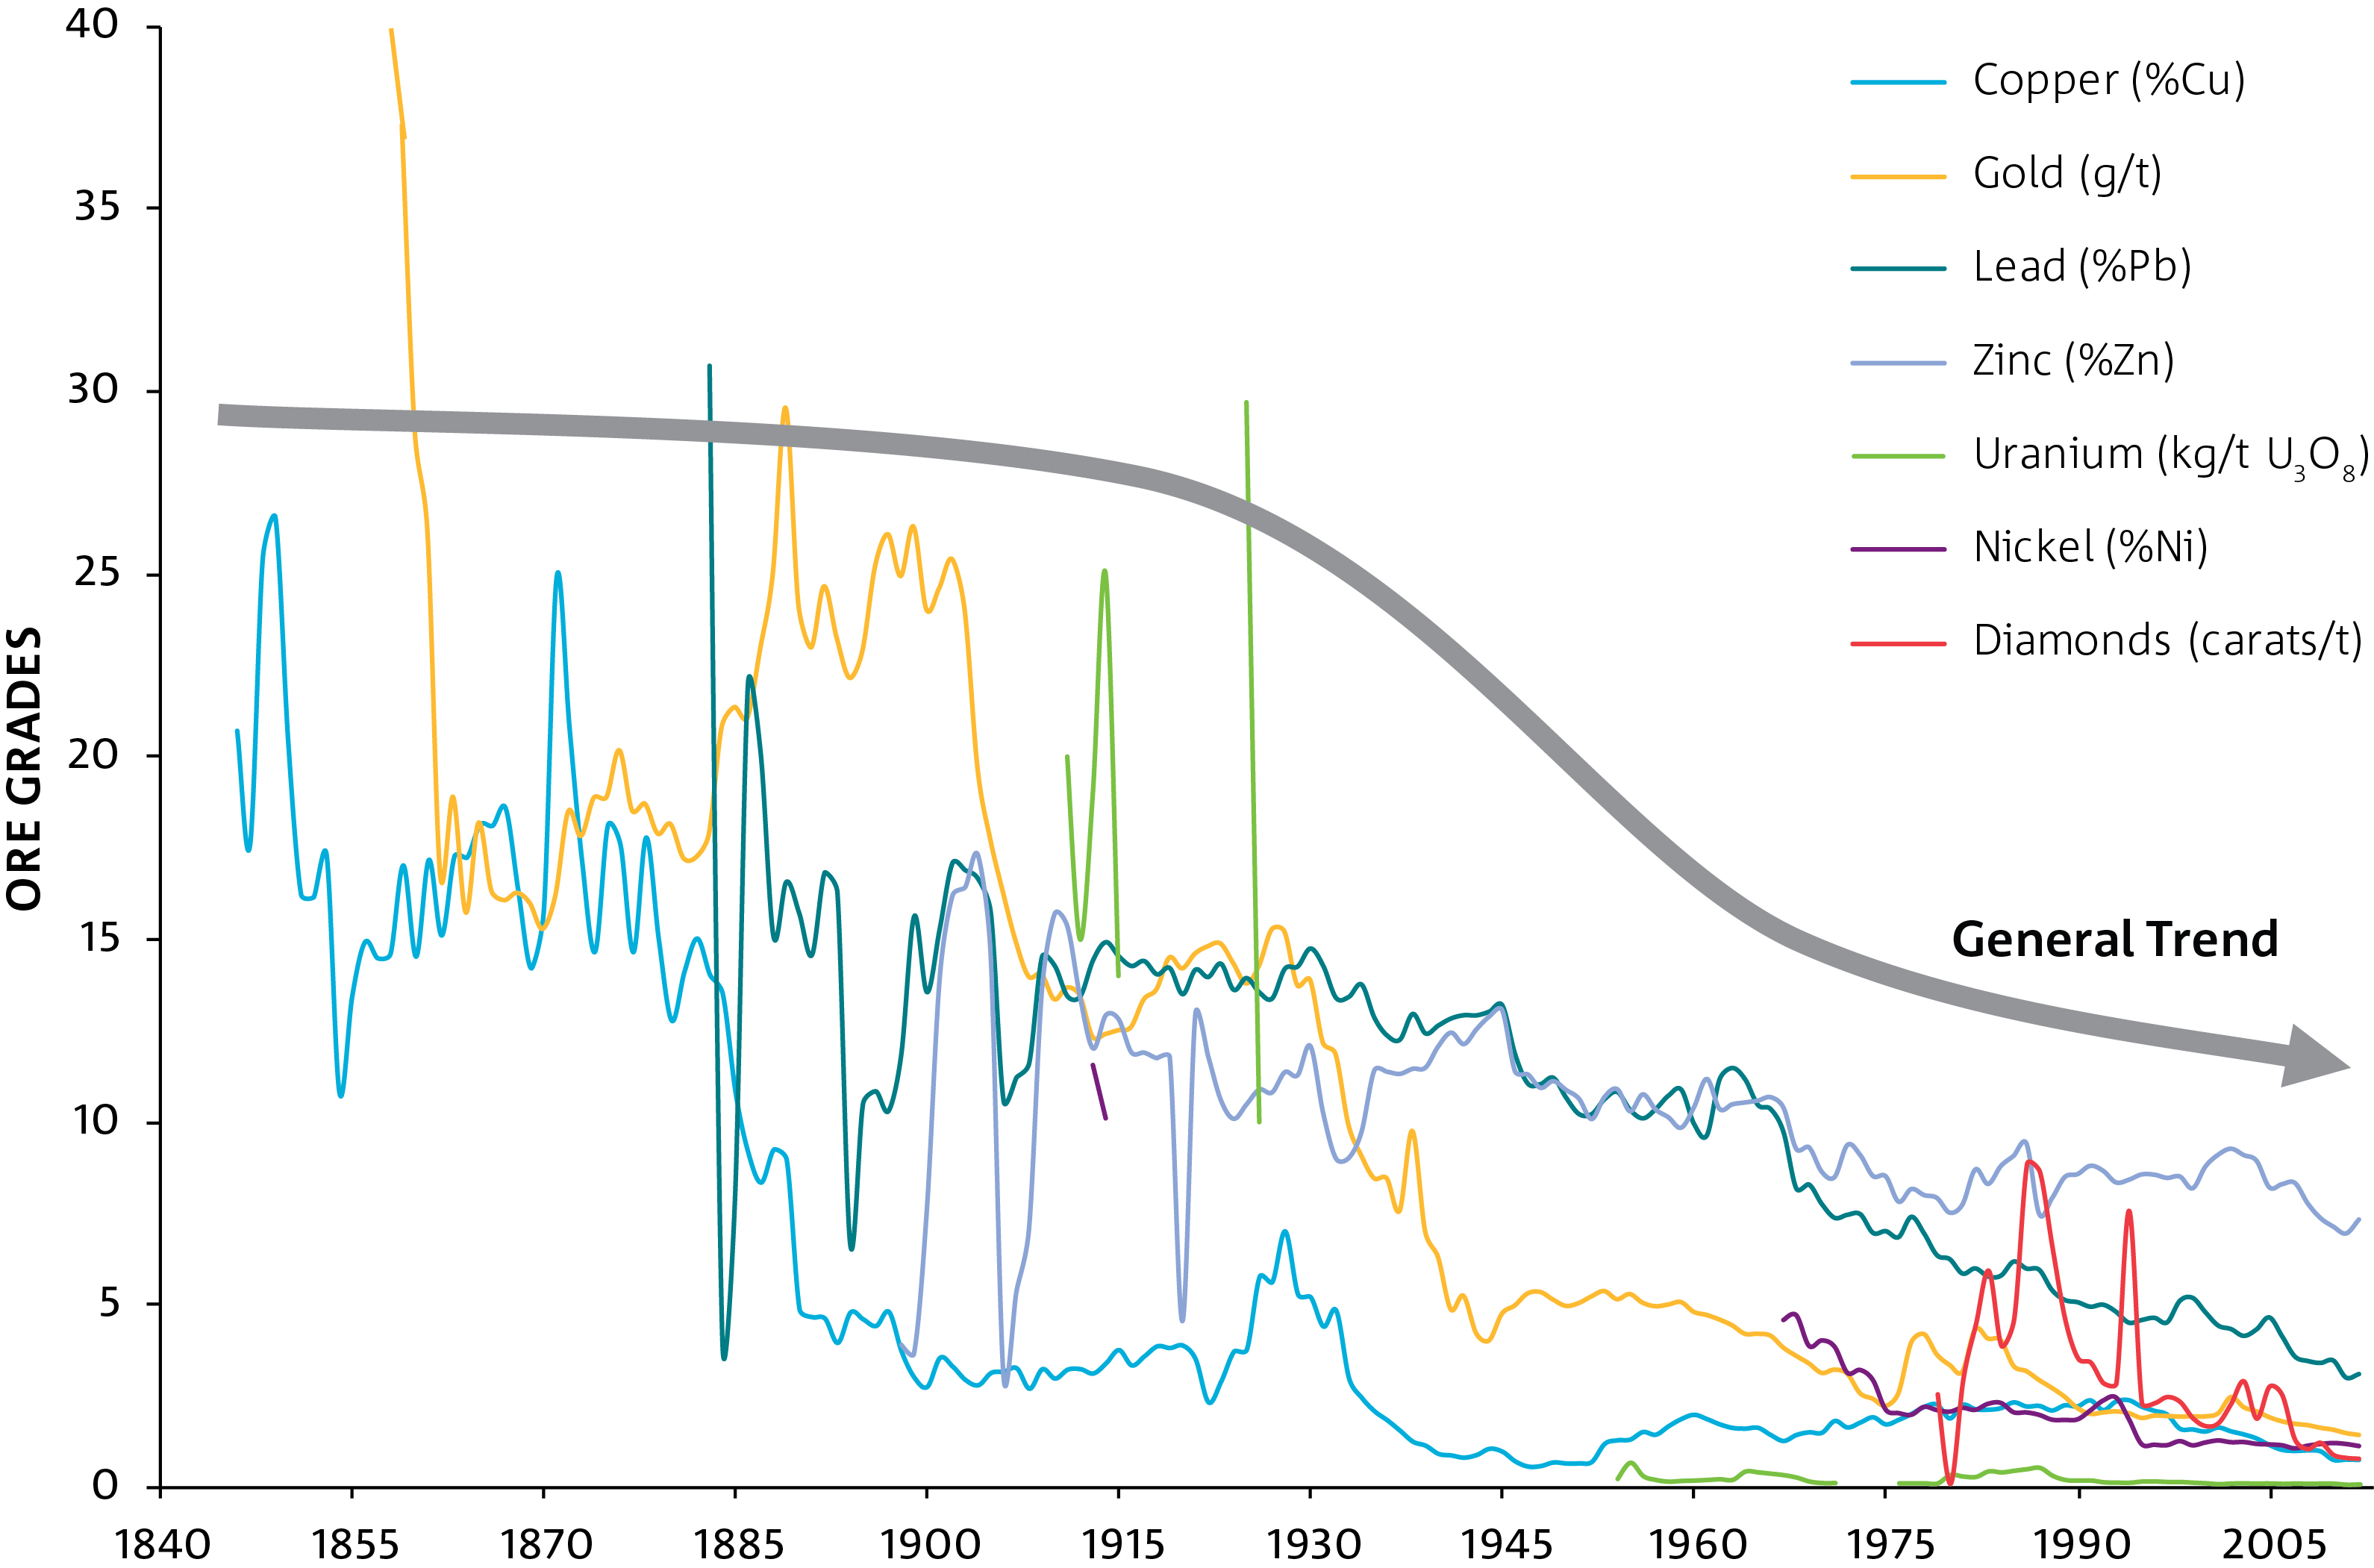 Line graph depicting the general declining trend of ore grades from 1840 through to 2005 for copper, gold, lead, zinc, uranium, nickel and diamonds.